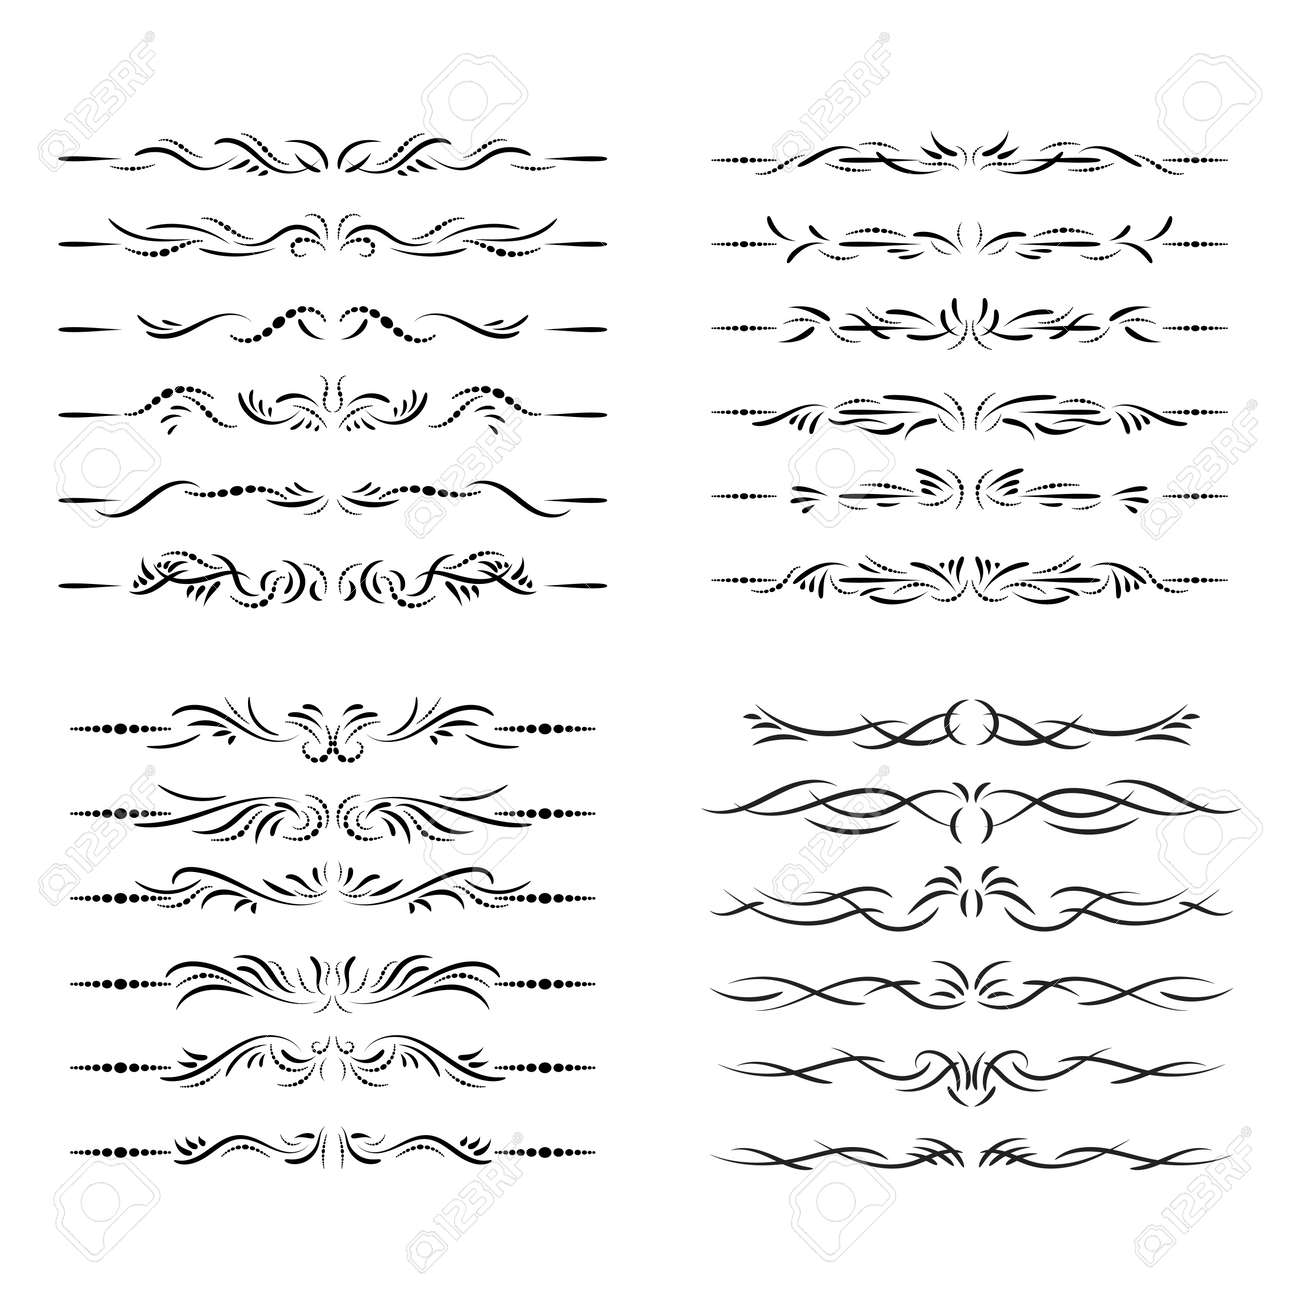 Fashion dividers. Underlines and text separators. Vector collection. Isolated vector set of borders for text, invitations, cards, books, menus. Design element. - 169599653